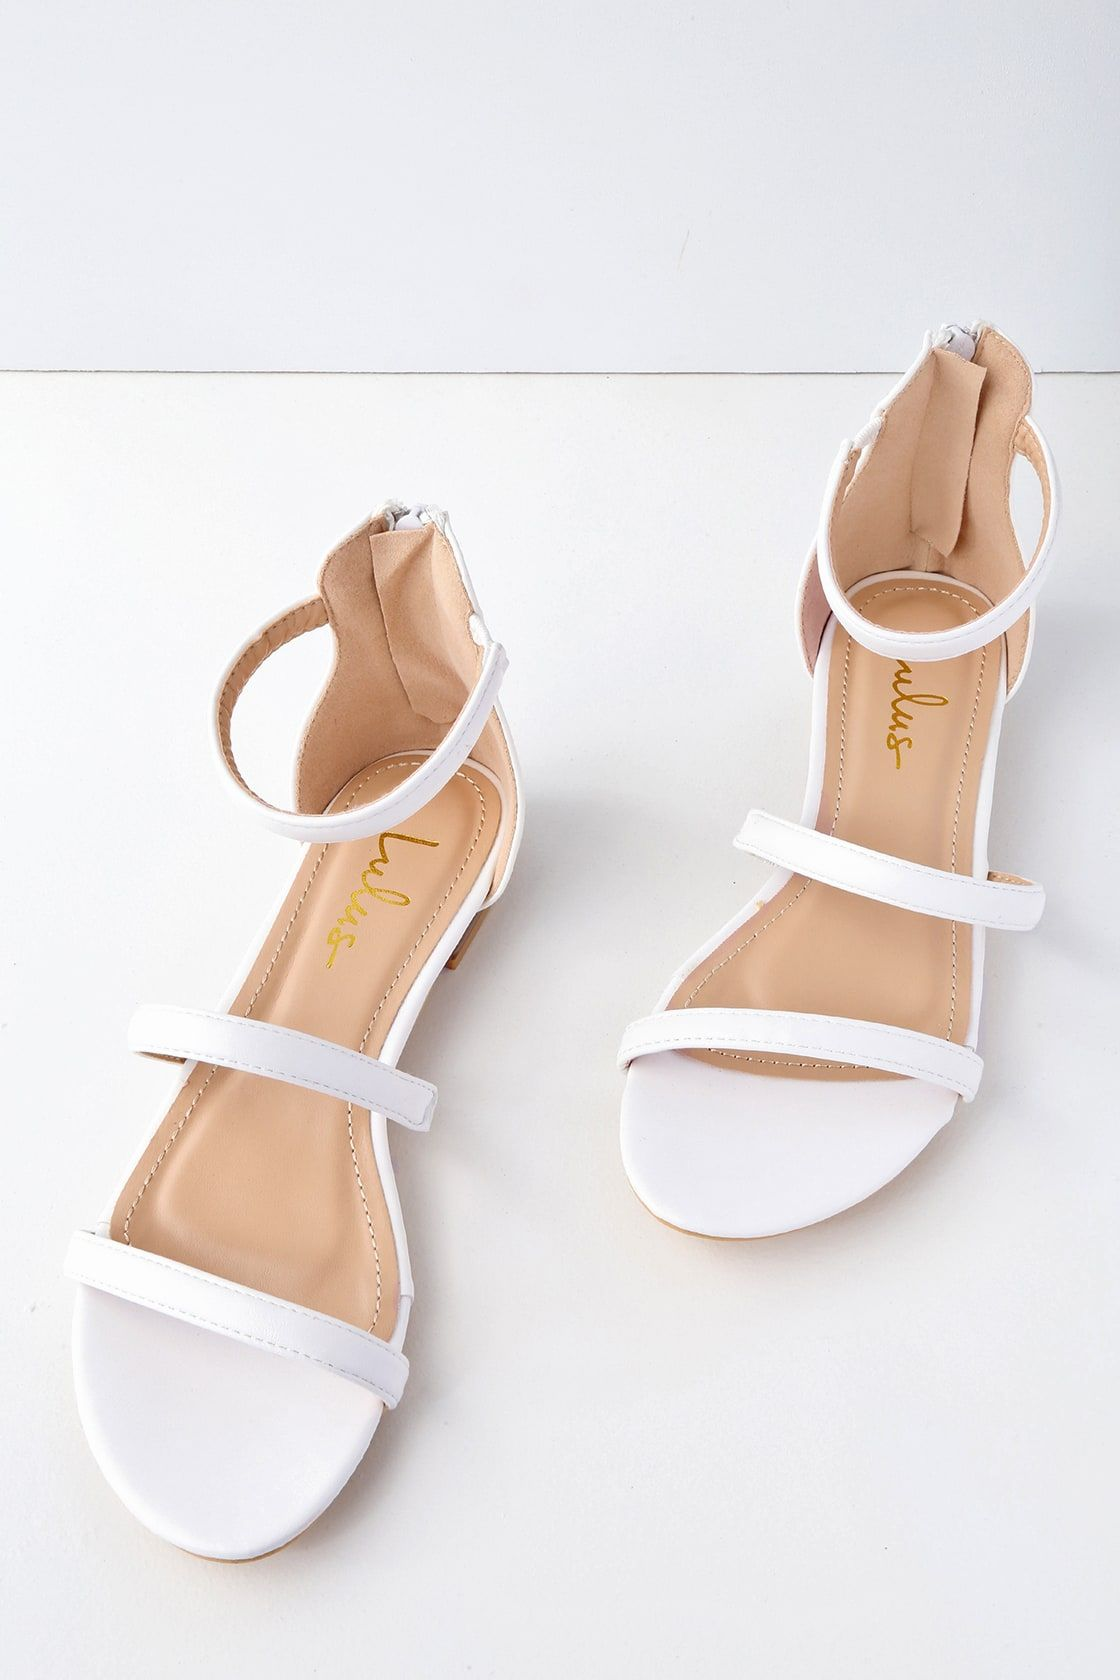 90582ebad Lulus | Quin White Flat Sandal Heels | Size 10 | Vegan Friendly in ...